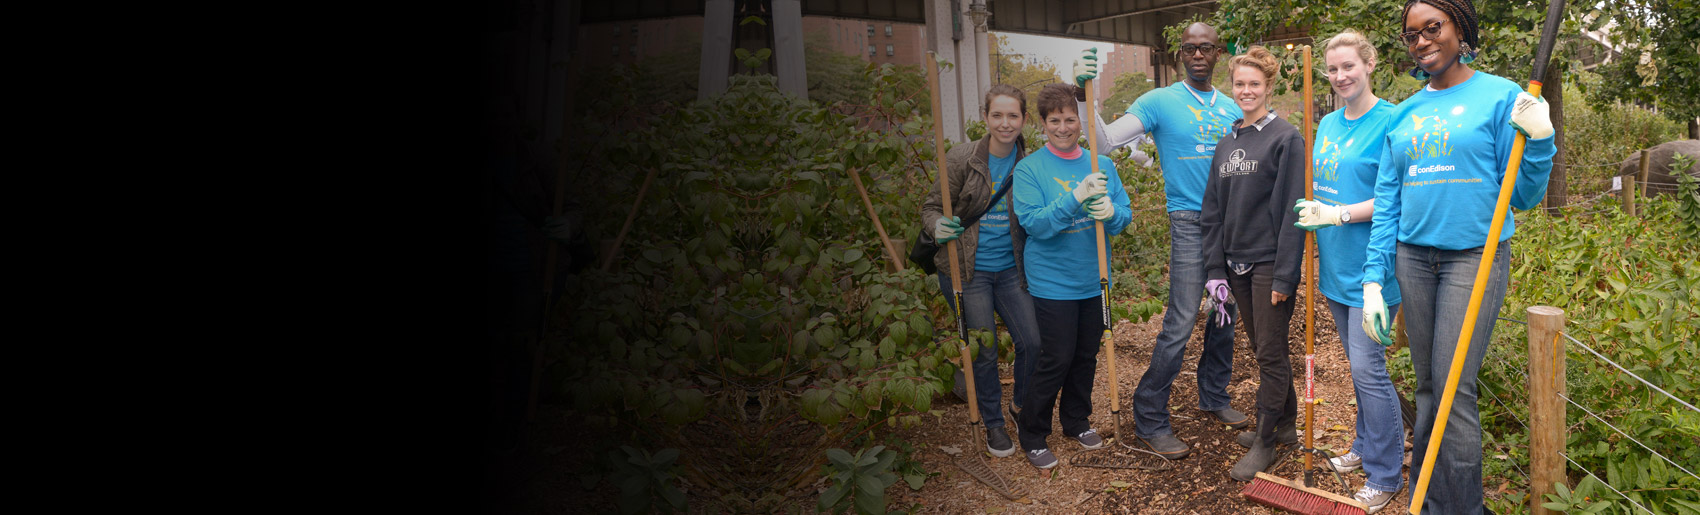 A group of Con Edison employees, working together in a community garden.